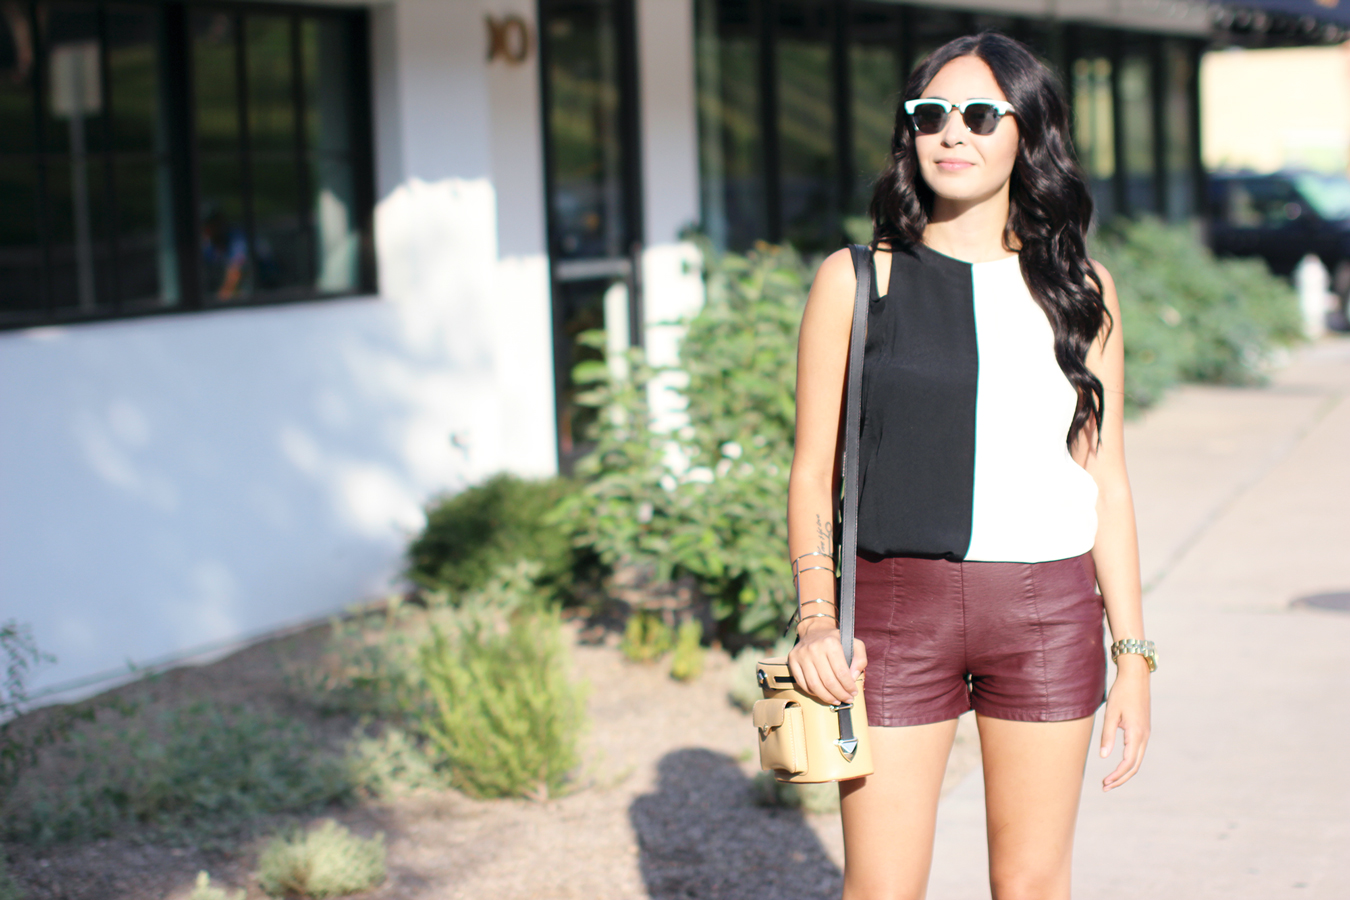 FIXIN-TO-THRILL-COLOR-BLOCK-LEATHER-SHORTS-CURLING-WAND-BLACK-WHITE-FALL-ATX-AUSTIN-STYLE-BLOG-SHIRTS-COLORS-TRENDS-FW15-TRENDY-CHIC-GLAM-FASHION-TEXAS-12